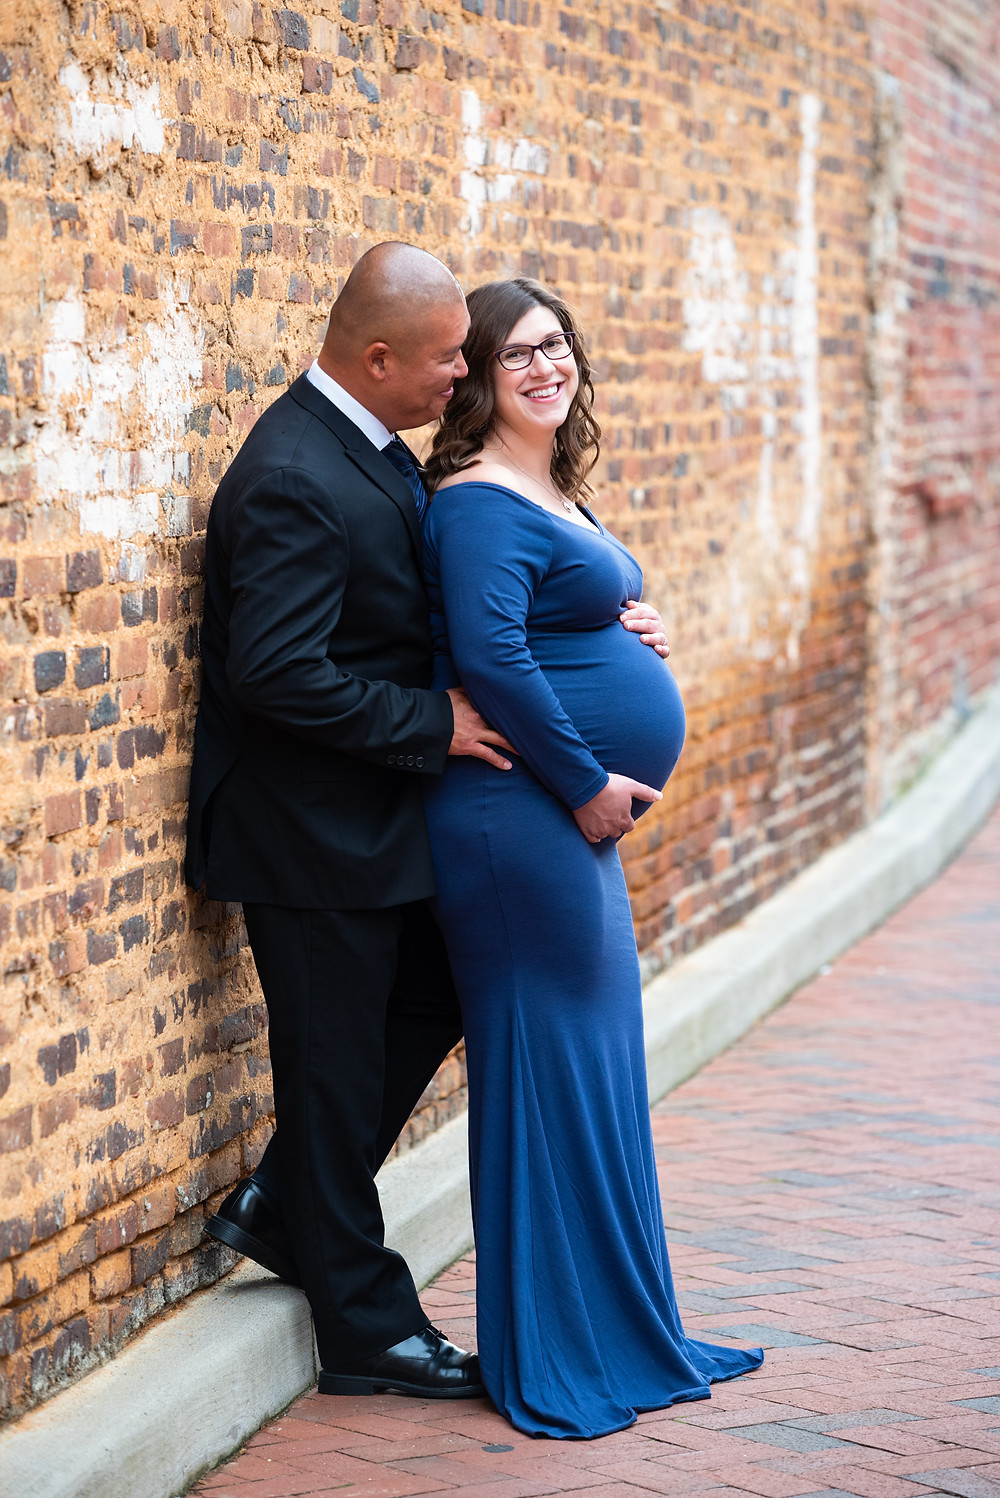 Couple's maternity photos in a blue dress against a brick wall in Hagerstown